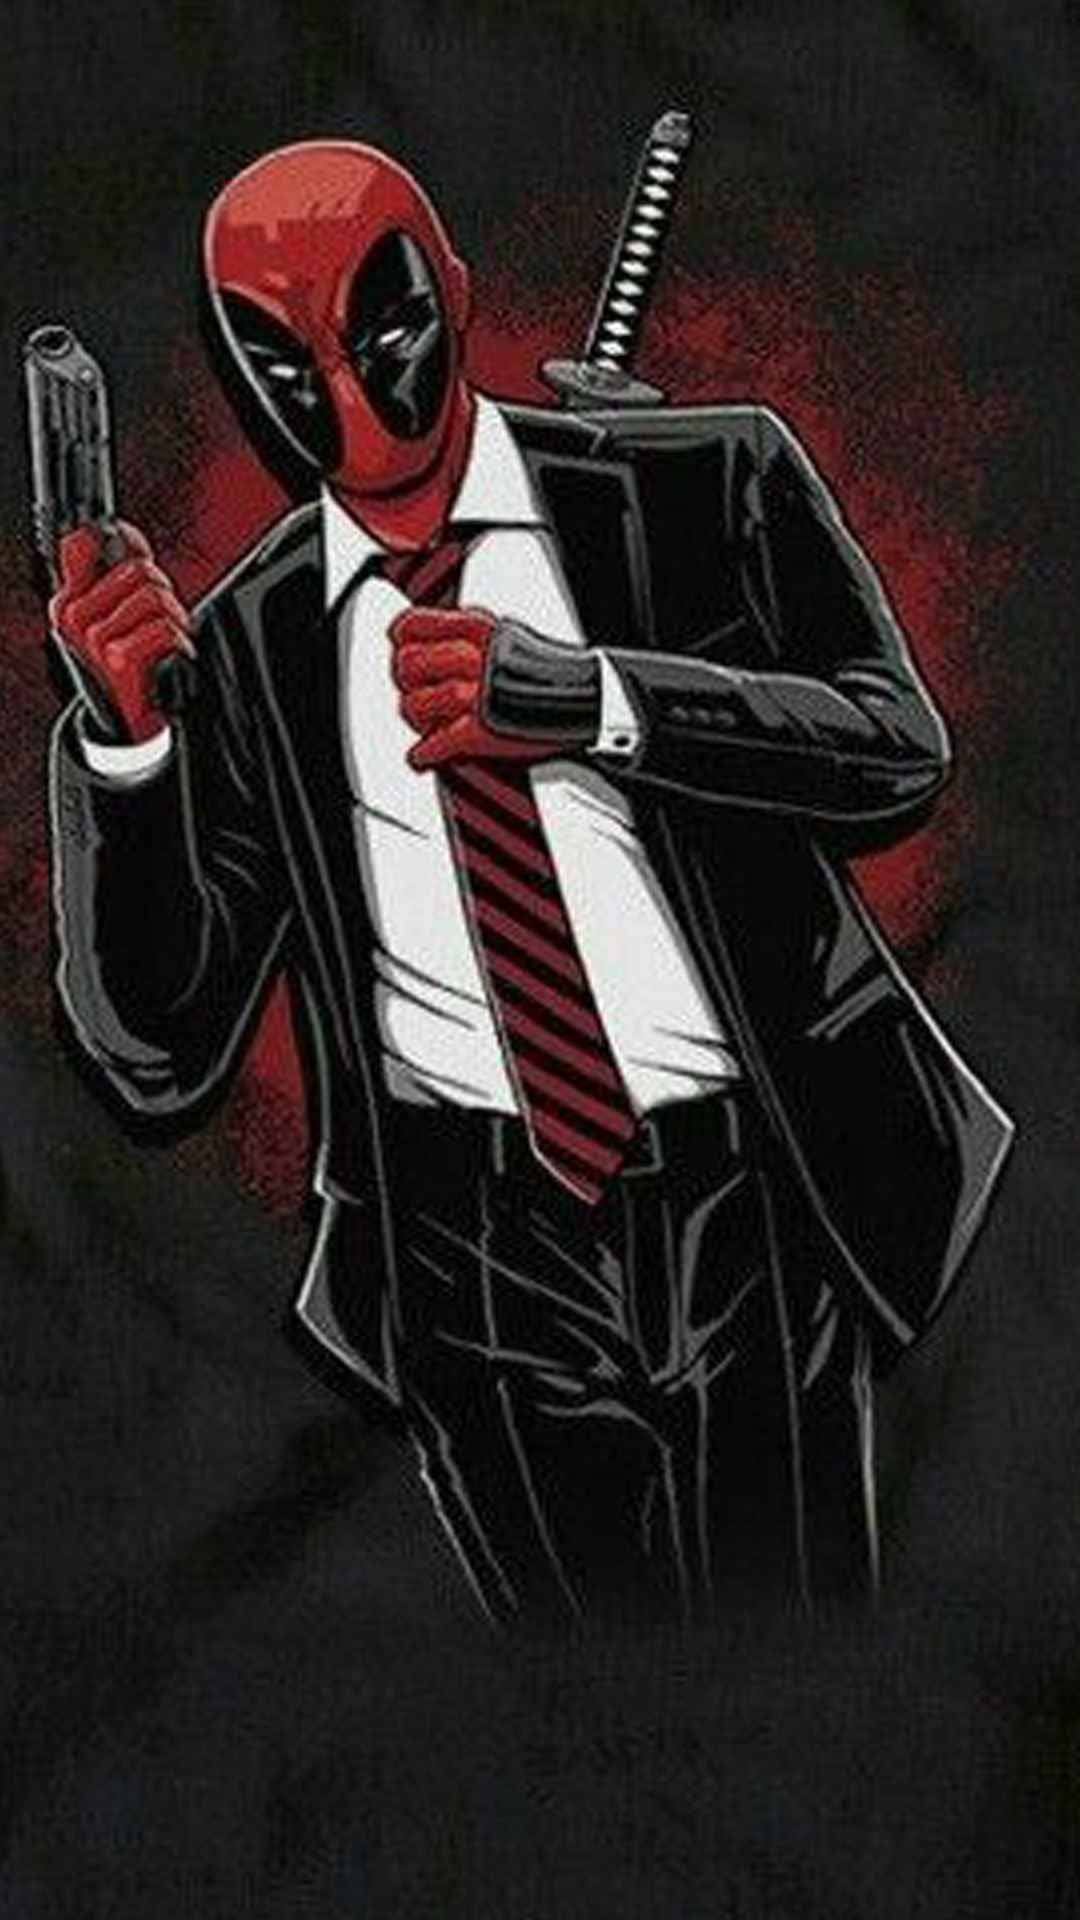 1080x1920 Deadpool Movie Hd Wallpapers Free Download Deadpool In A Suit 1080x1920 Download Hd Wallpaper Wallpapertip